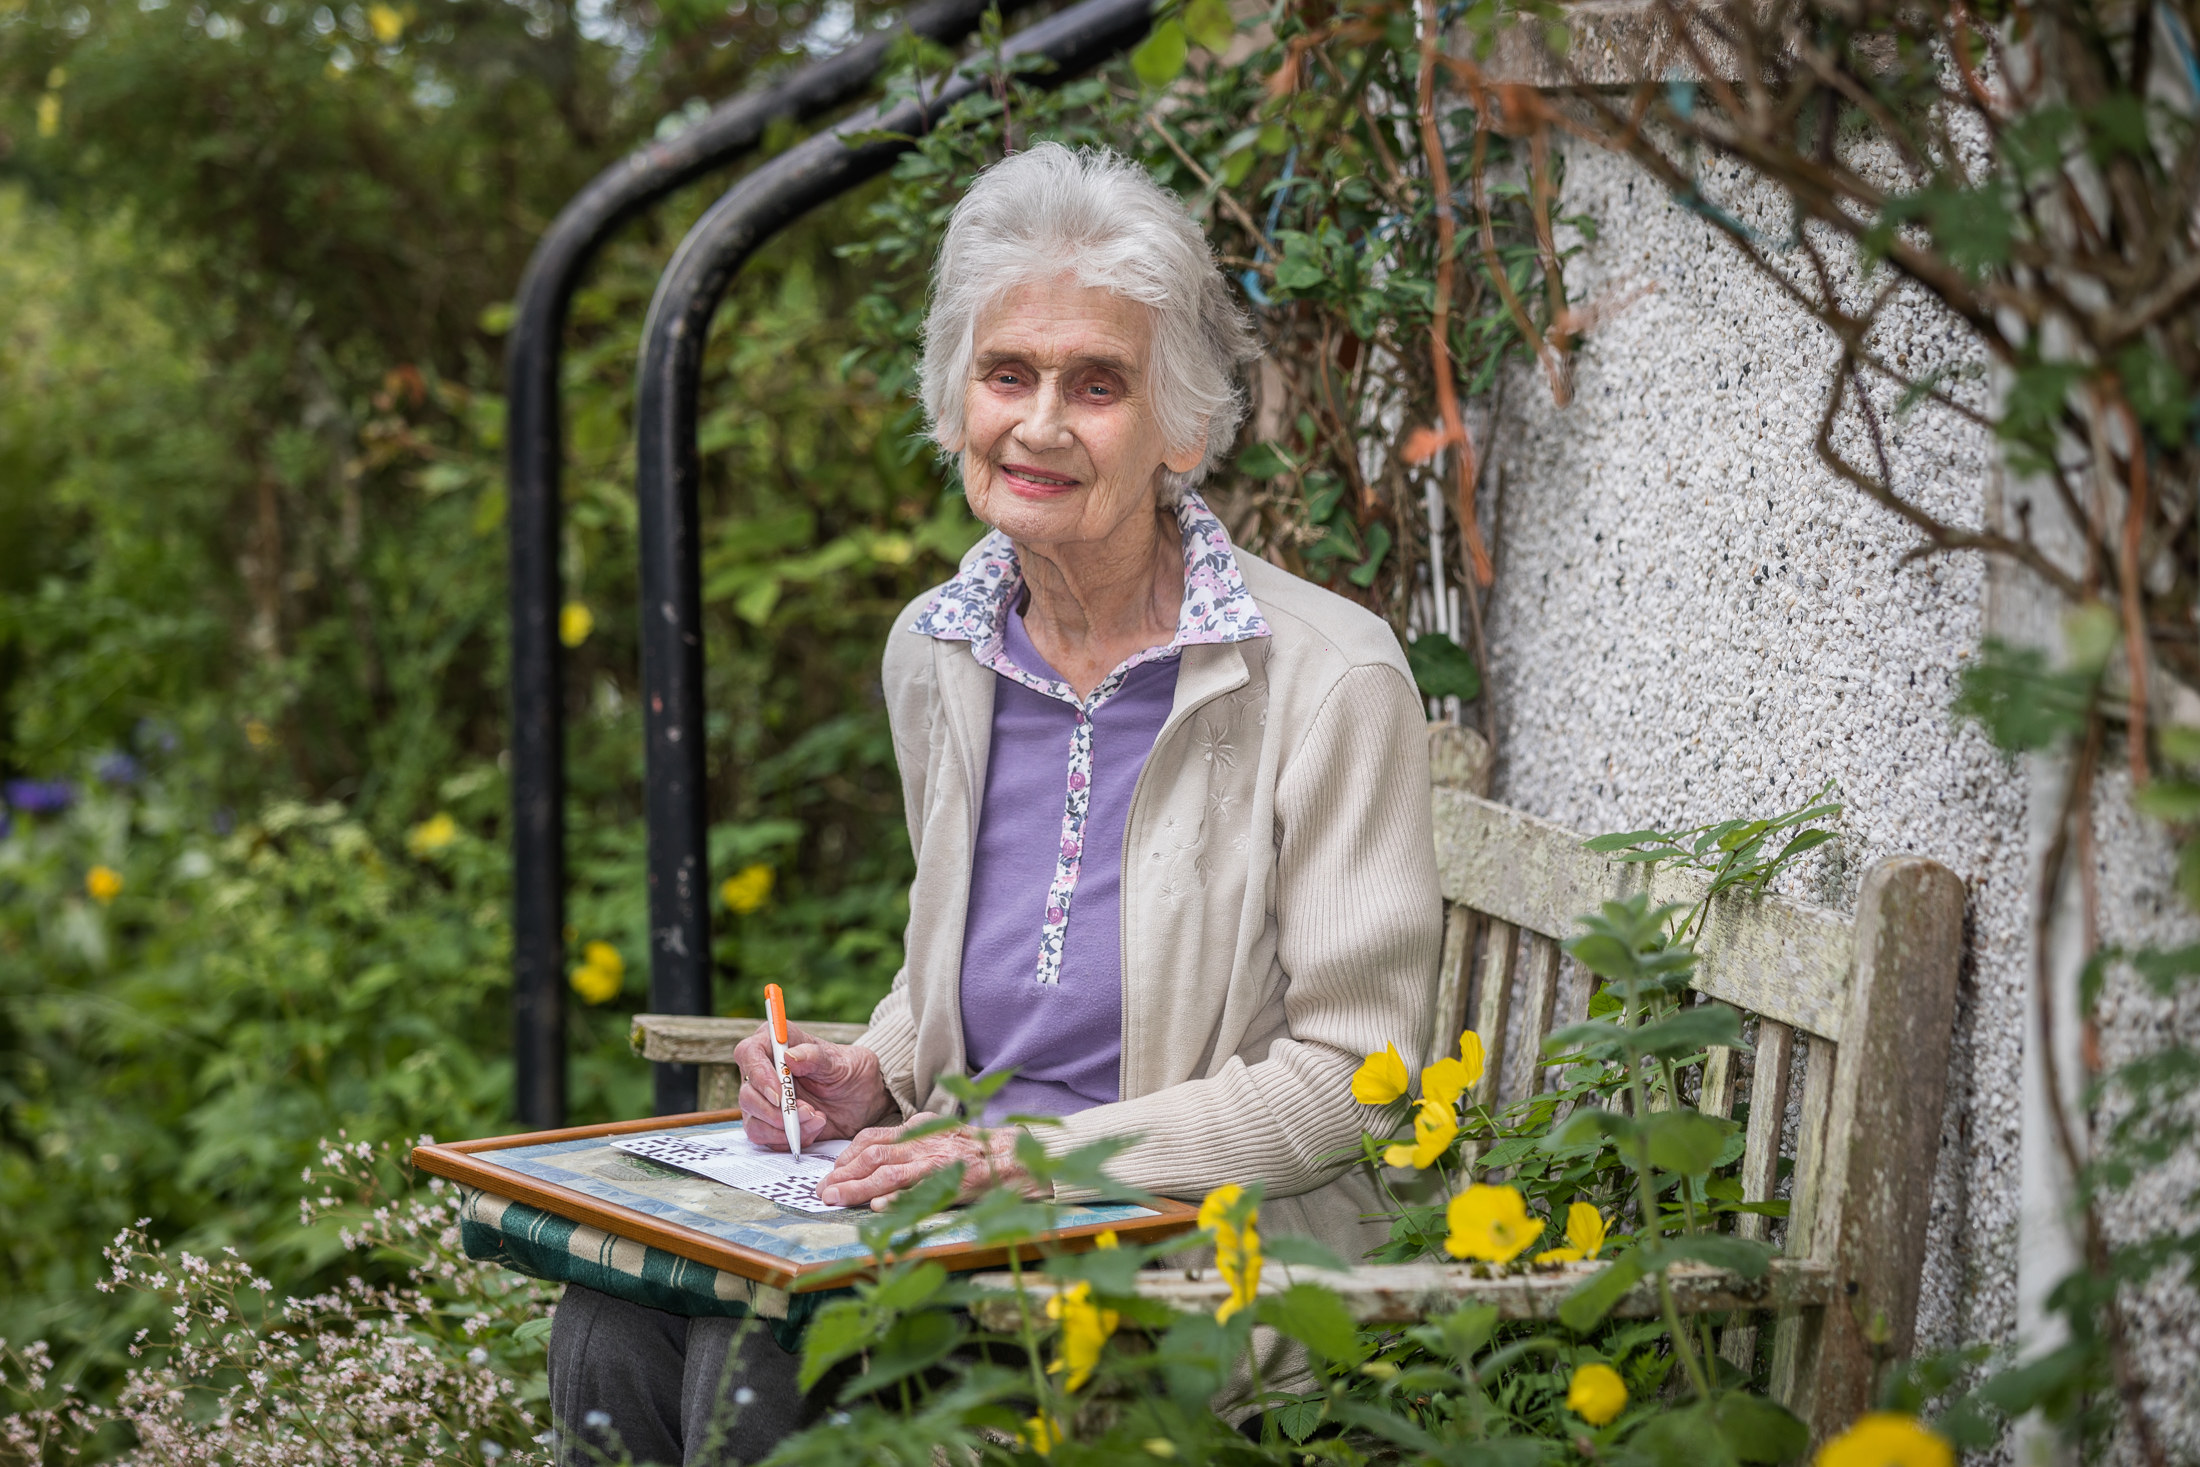 91 year old Ida Donnahie of Maryburgh has been keeping herself busy completing P&J crosswords during the pandemic lockdown.